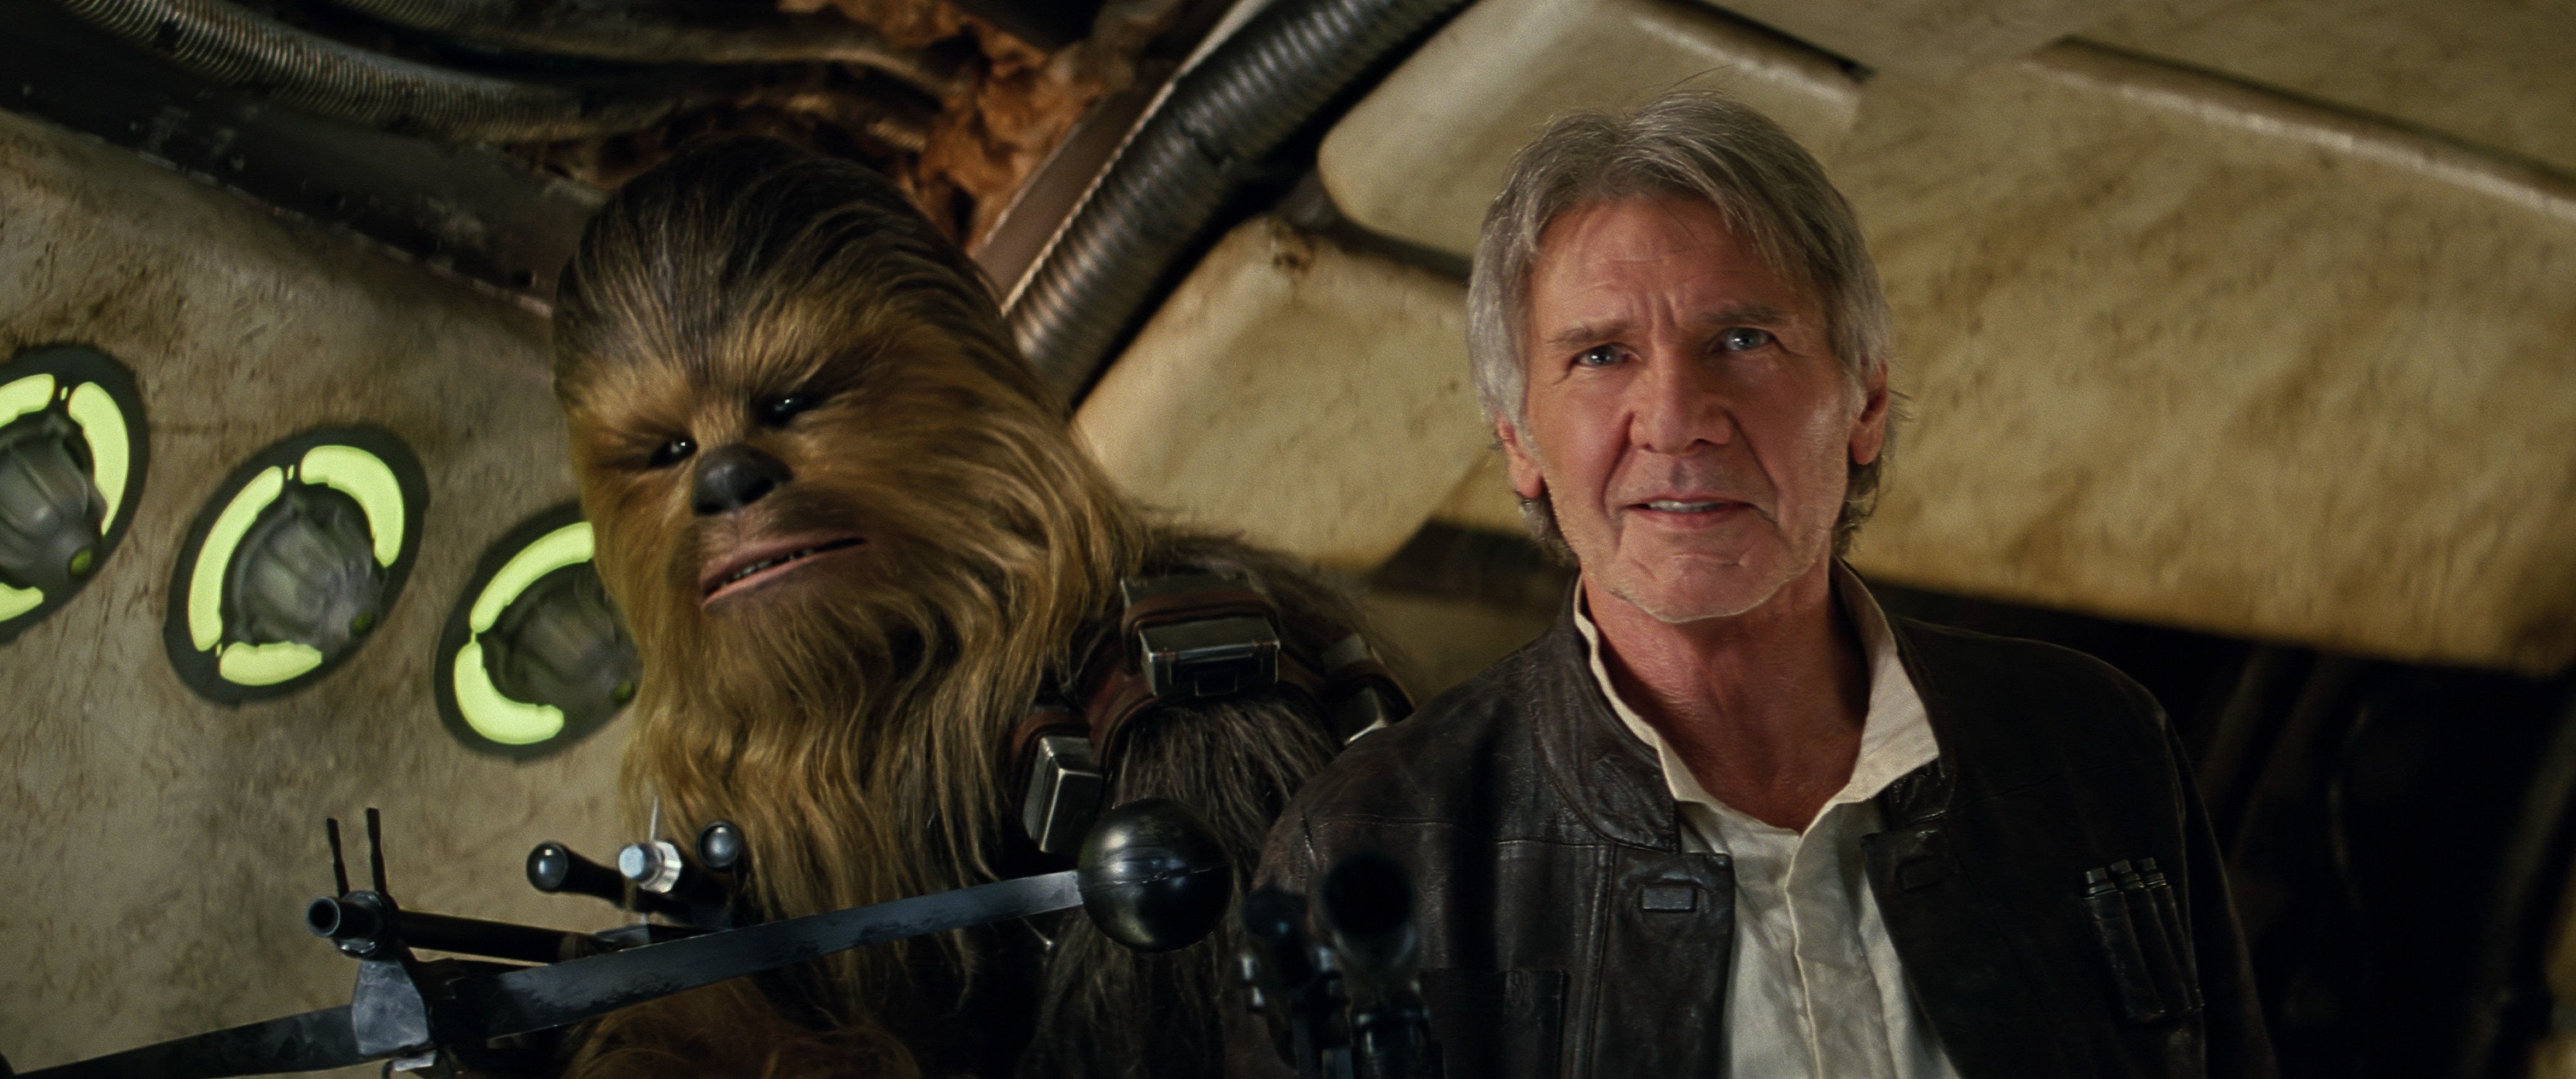 star_wars_the_force_awakens_40043082_st_14_s-high